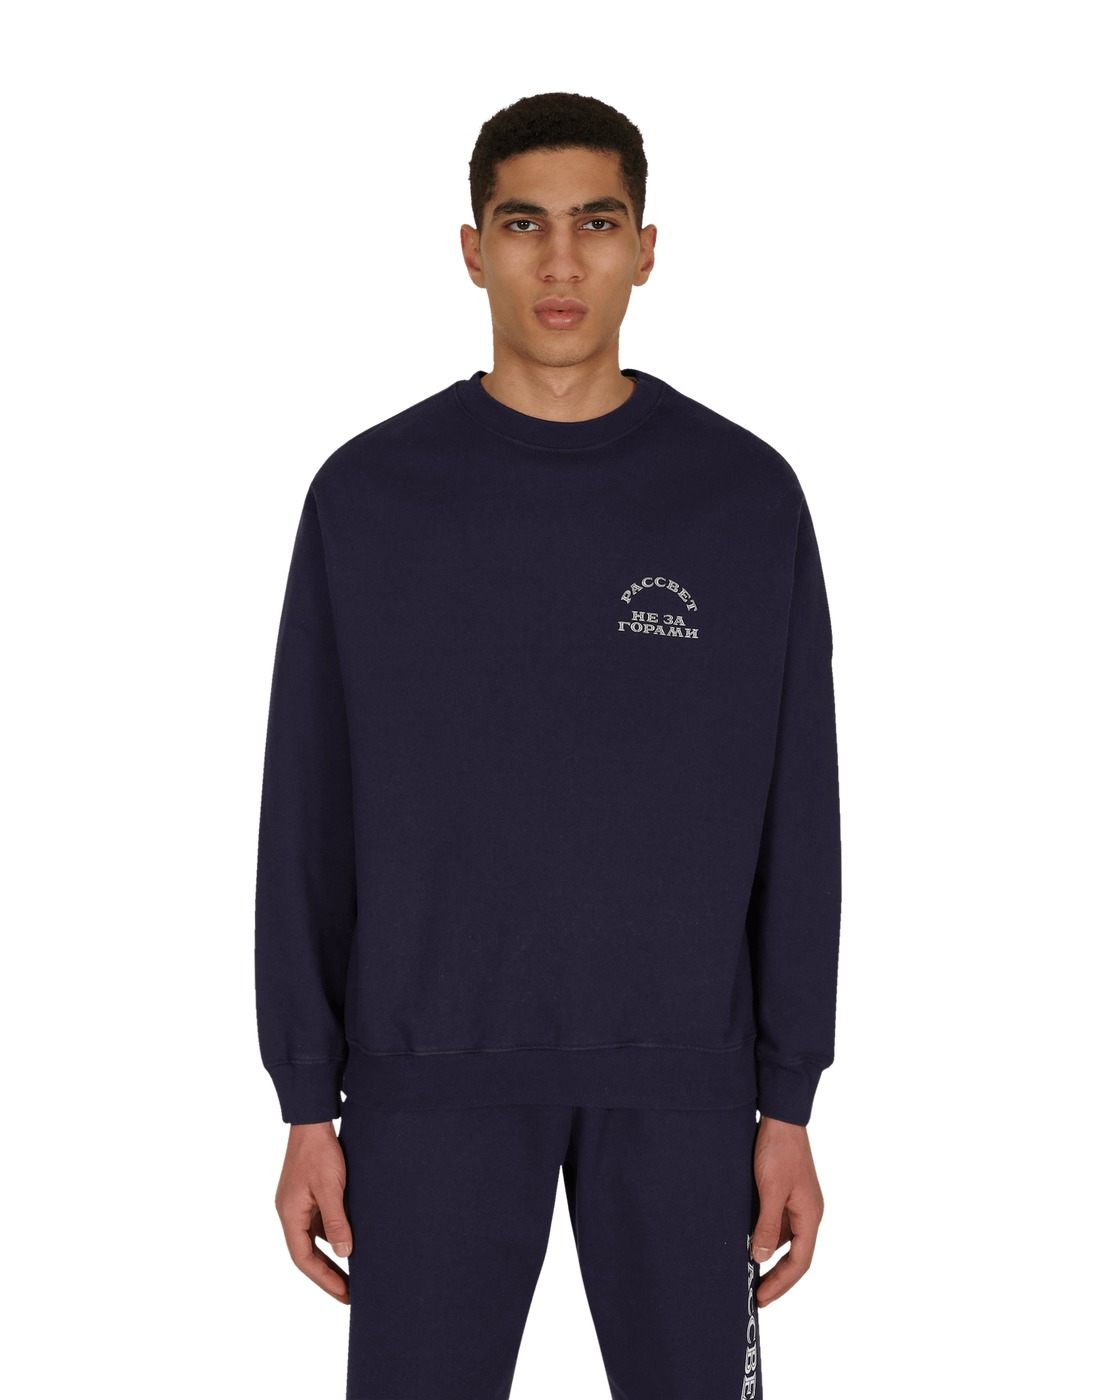 Photo: Paccbet Printed Crewneck Sweatshirt Navy